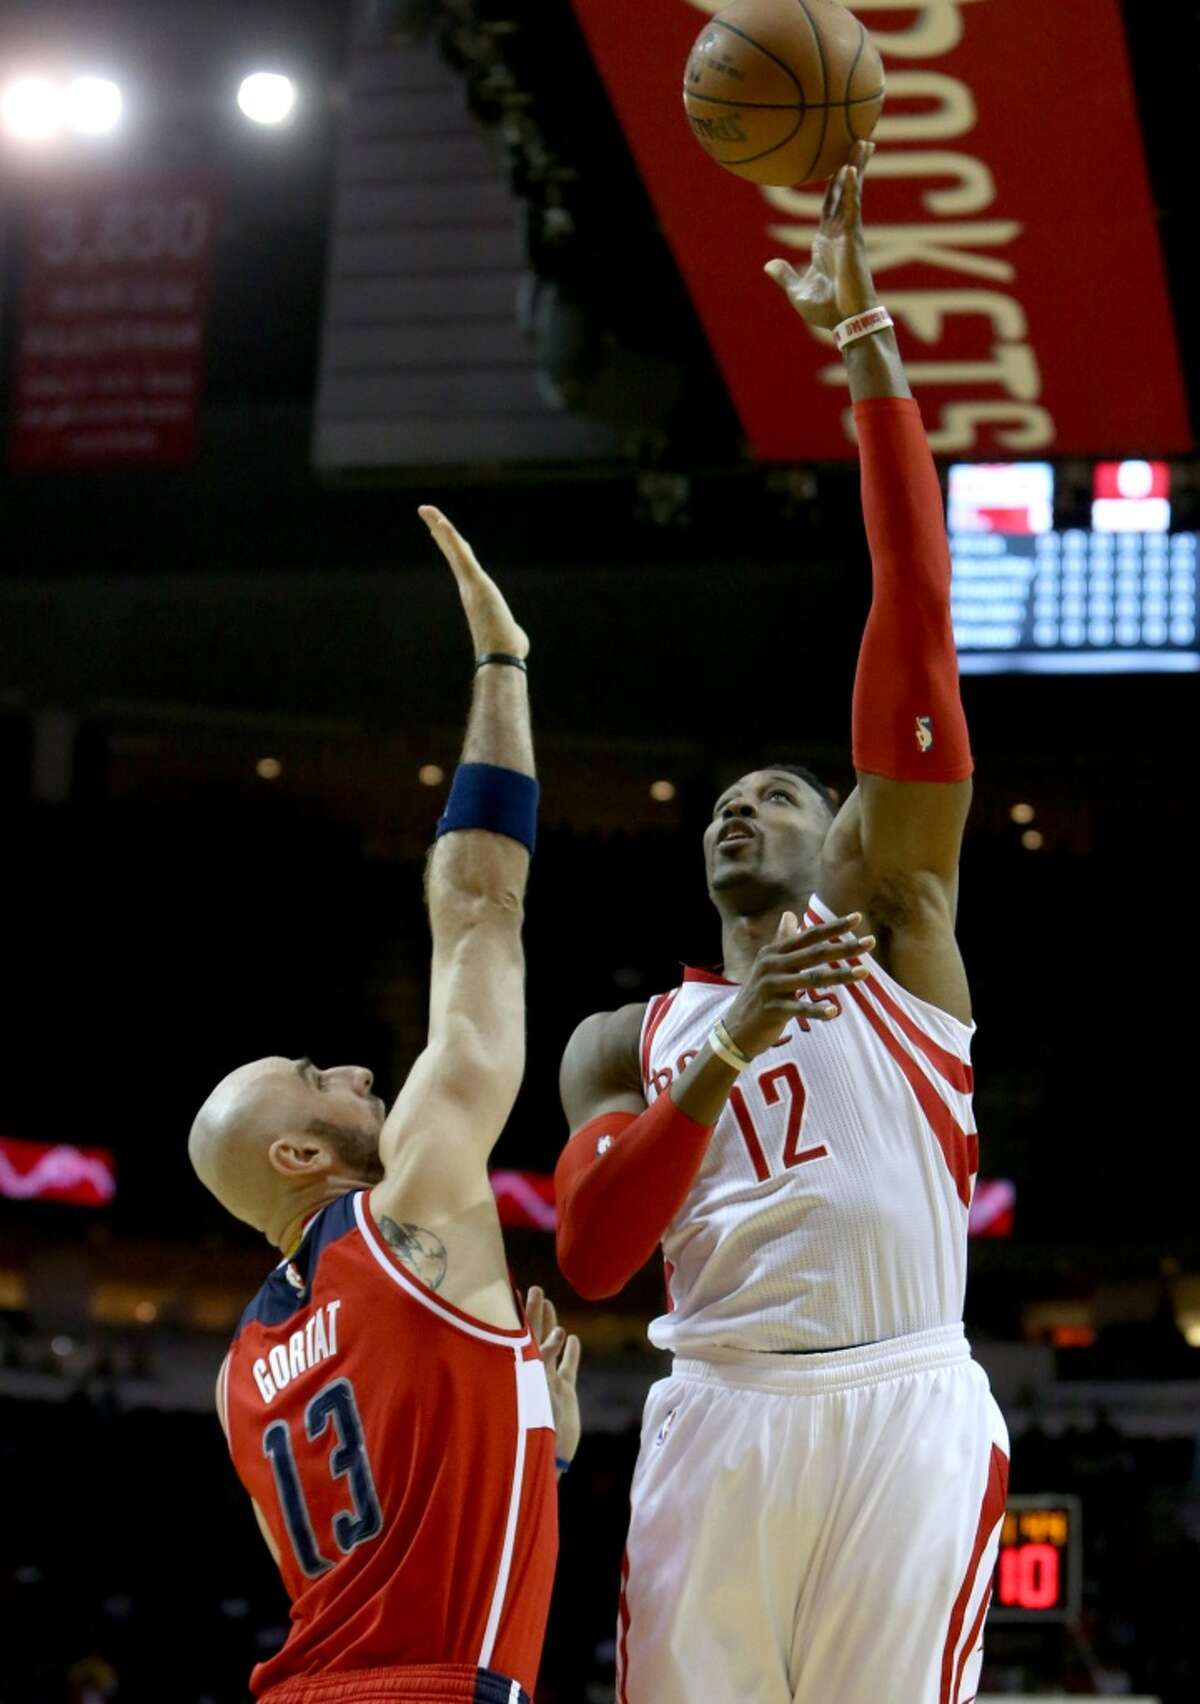 Houston Rockets guard Patrick Beverley (2) scores a basket guarded by Washington Wizards center Marcin Gortat (13) during the first quarter at the Toyota Center Saturday, Jan. 30, 2016, in Houston, Texas. ( Gary Coronado / Houston Chronicle )